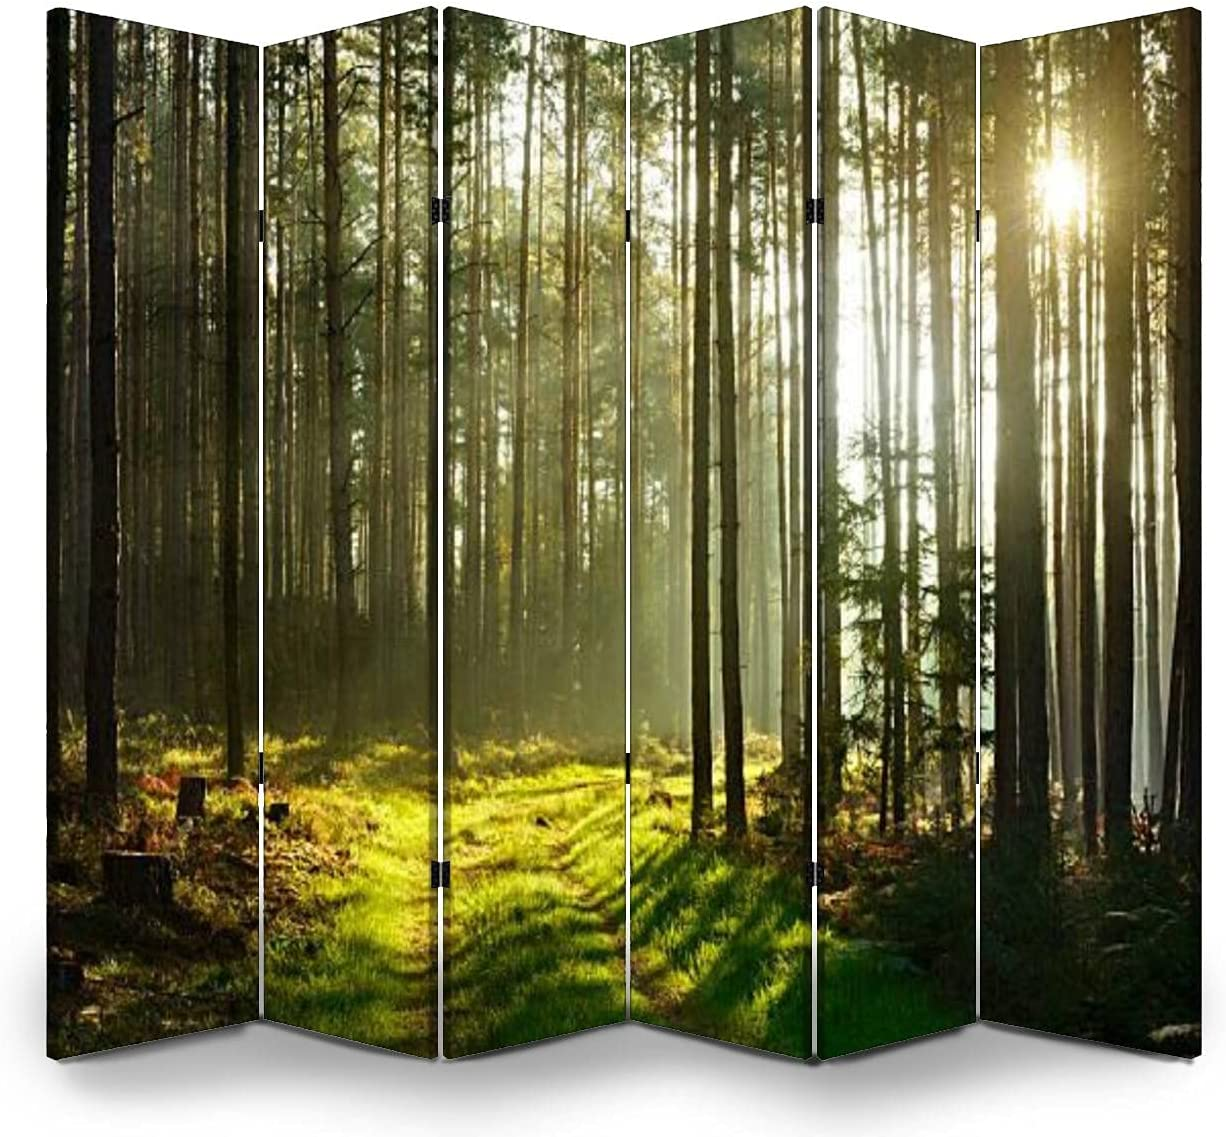 SALENEW very popular! 6 Panels Room Divider Free Shipping Cheap Bargain Gift Screen Breaking Partition Through Sunbeams